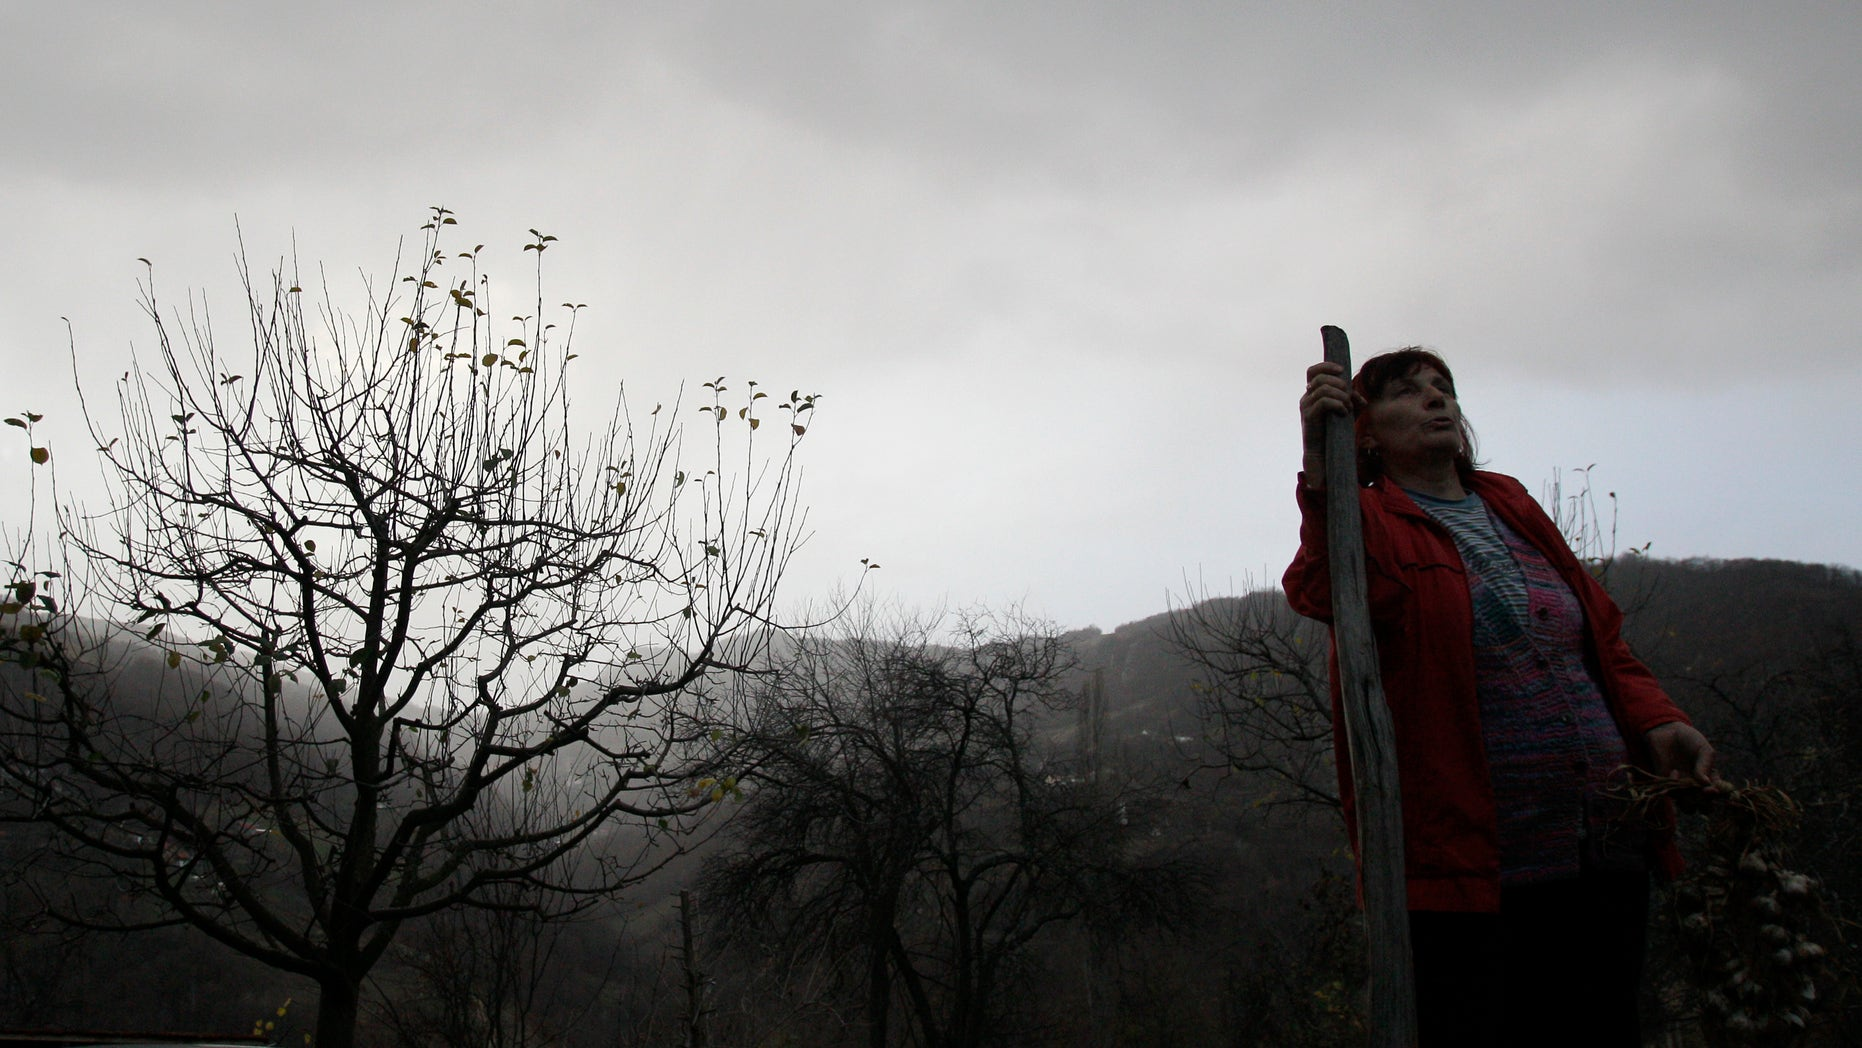 Nov. 30, 2012: In this photo Milka  Prokic is seen at twilight with a garland of garlic and a wooden stake, in the village of Zarozje, near the Serbian town of Bajina Basta.